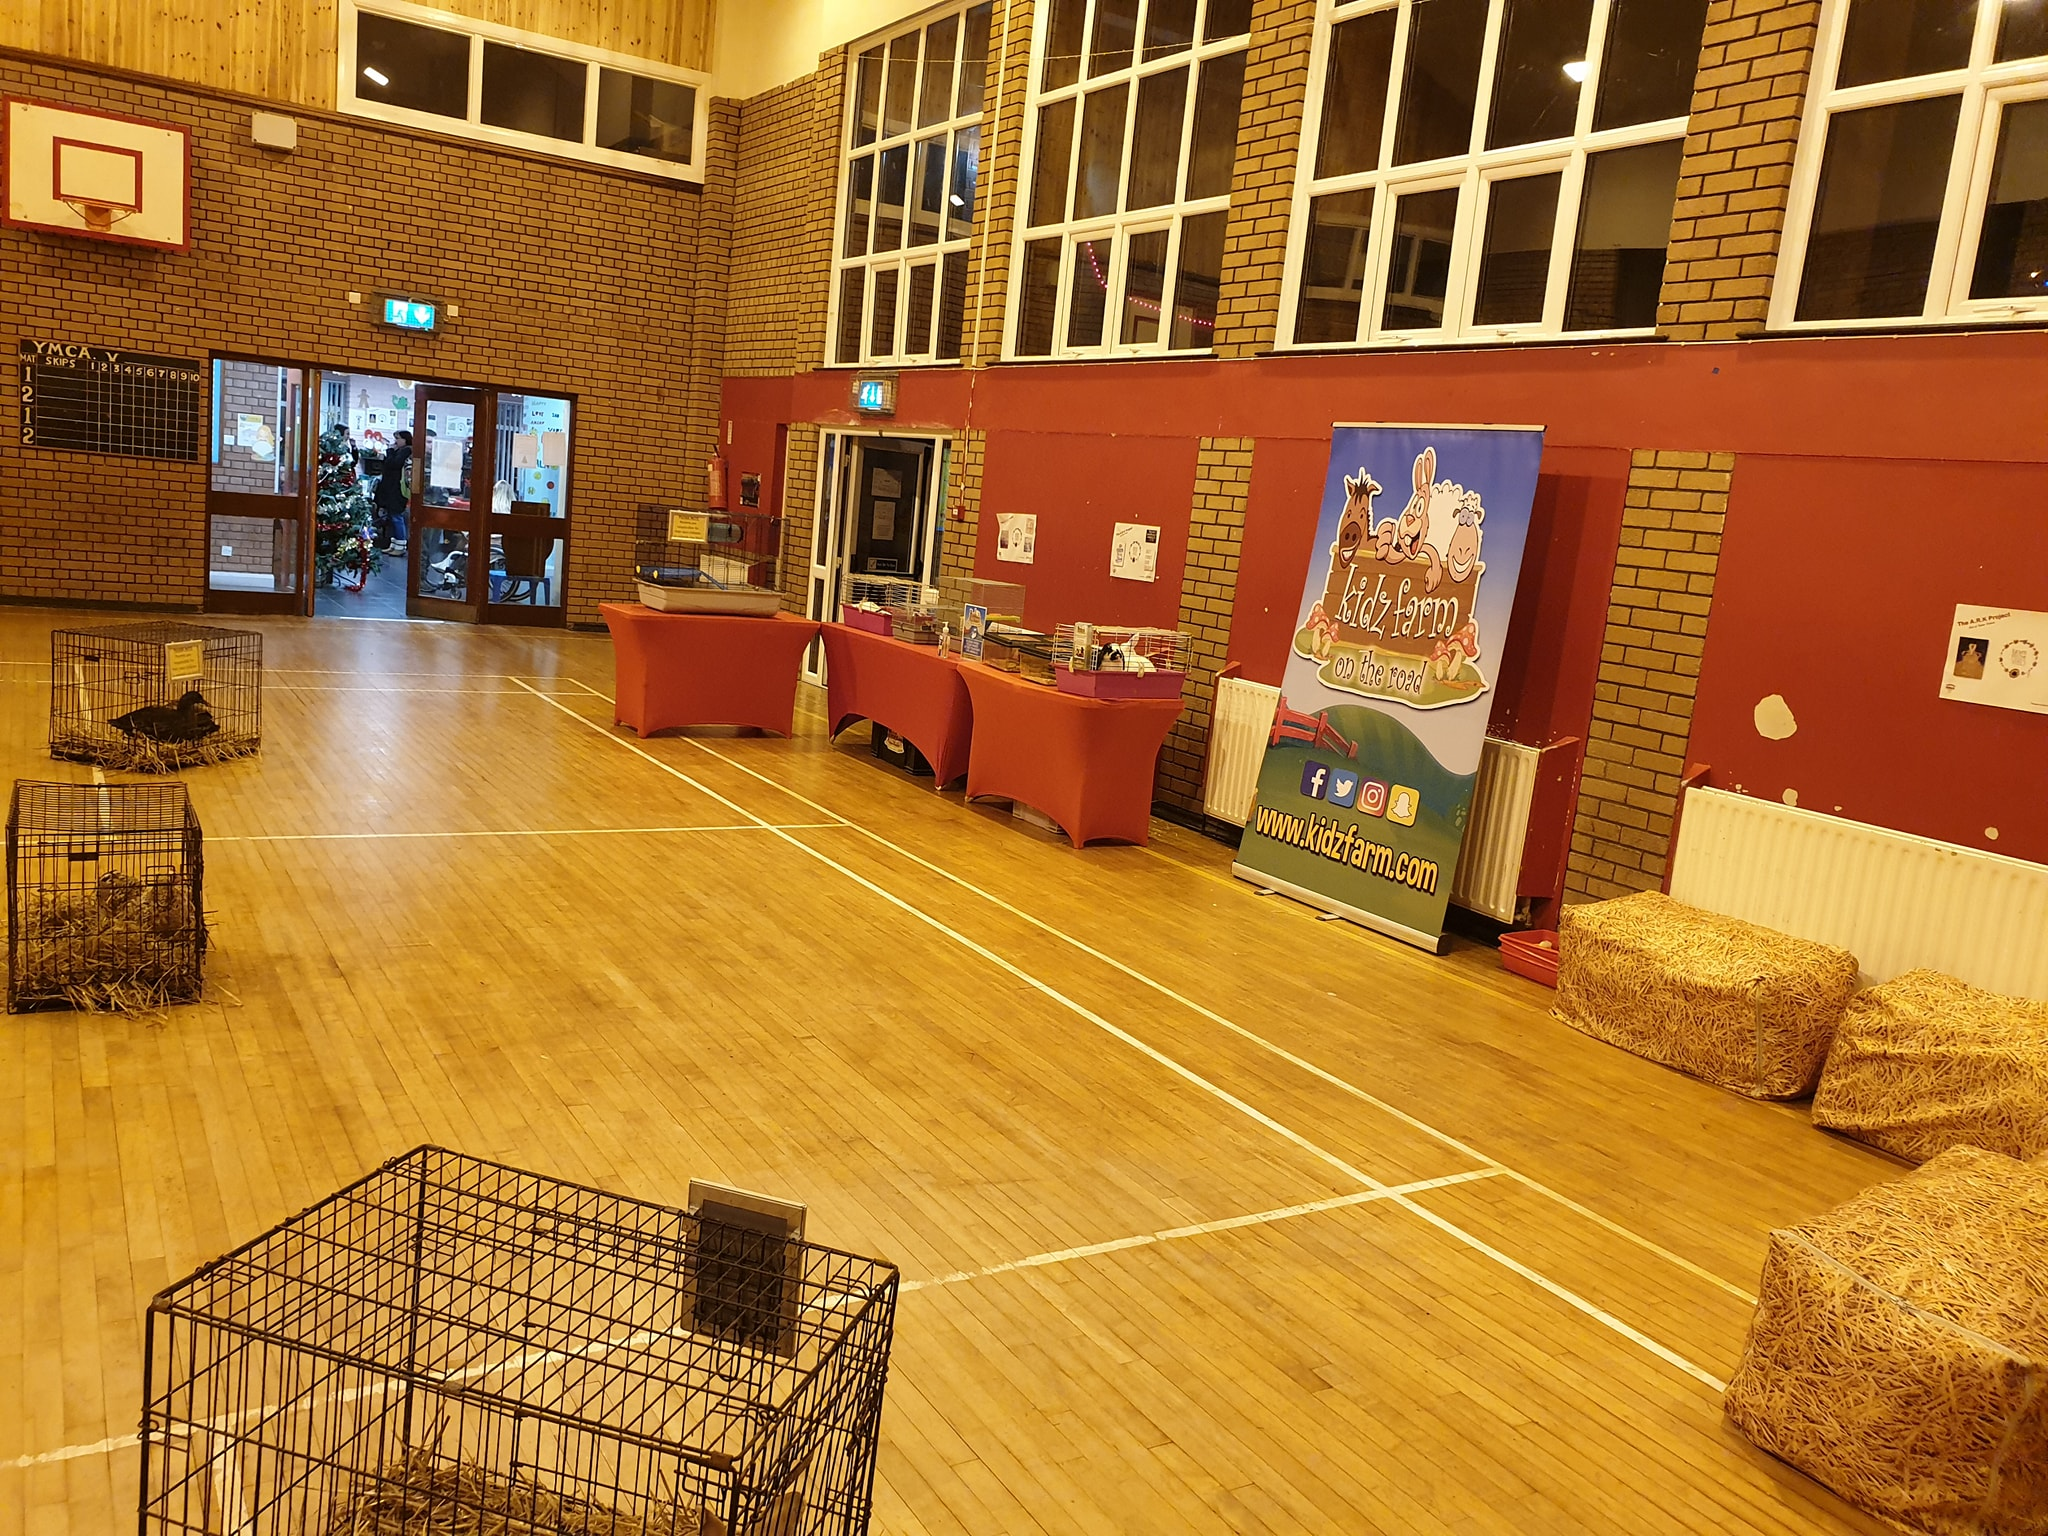 Read more about the article So whilst I was out sailing about with Santa tonight visiting lots of extremely good Boys and Girls ???. Noelle and Craig had a great time at the YMCA with Mencap showing our indoor package and had a brilliant time.